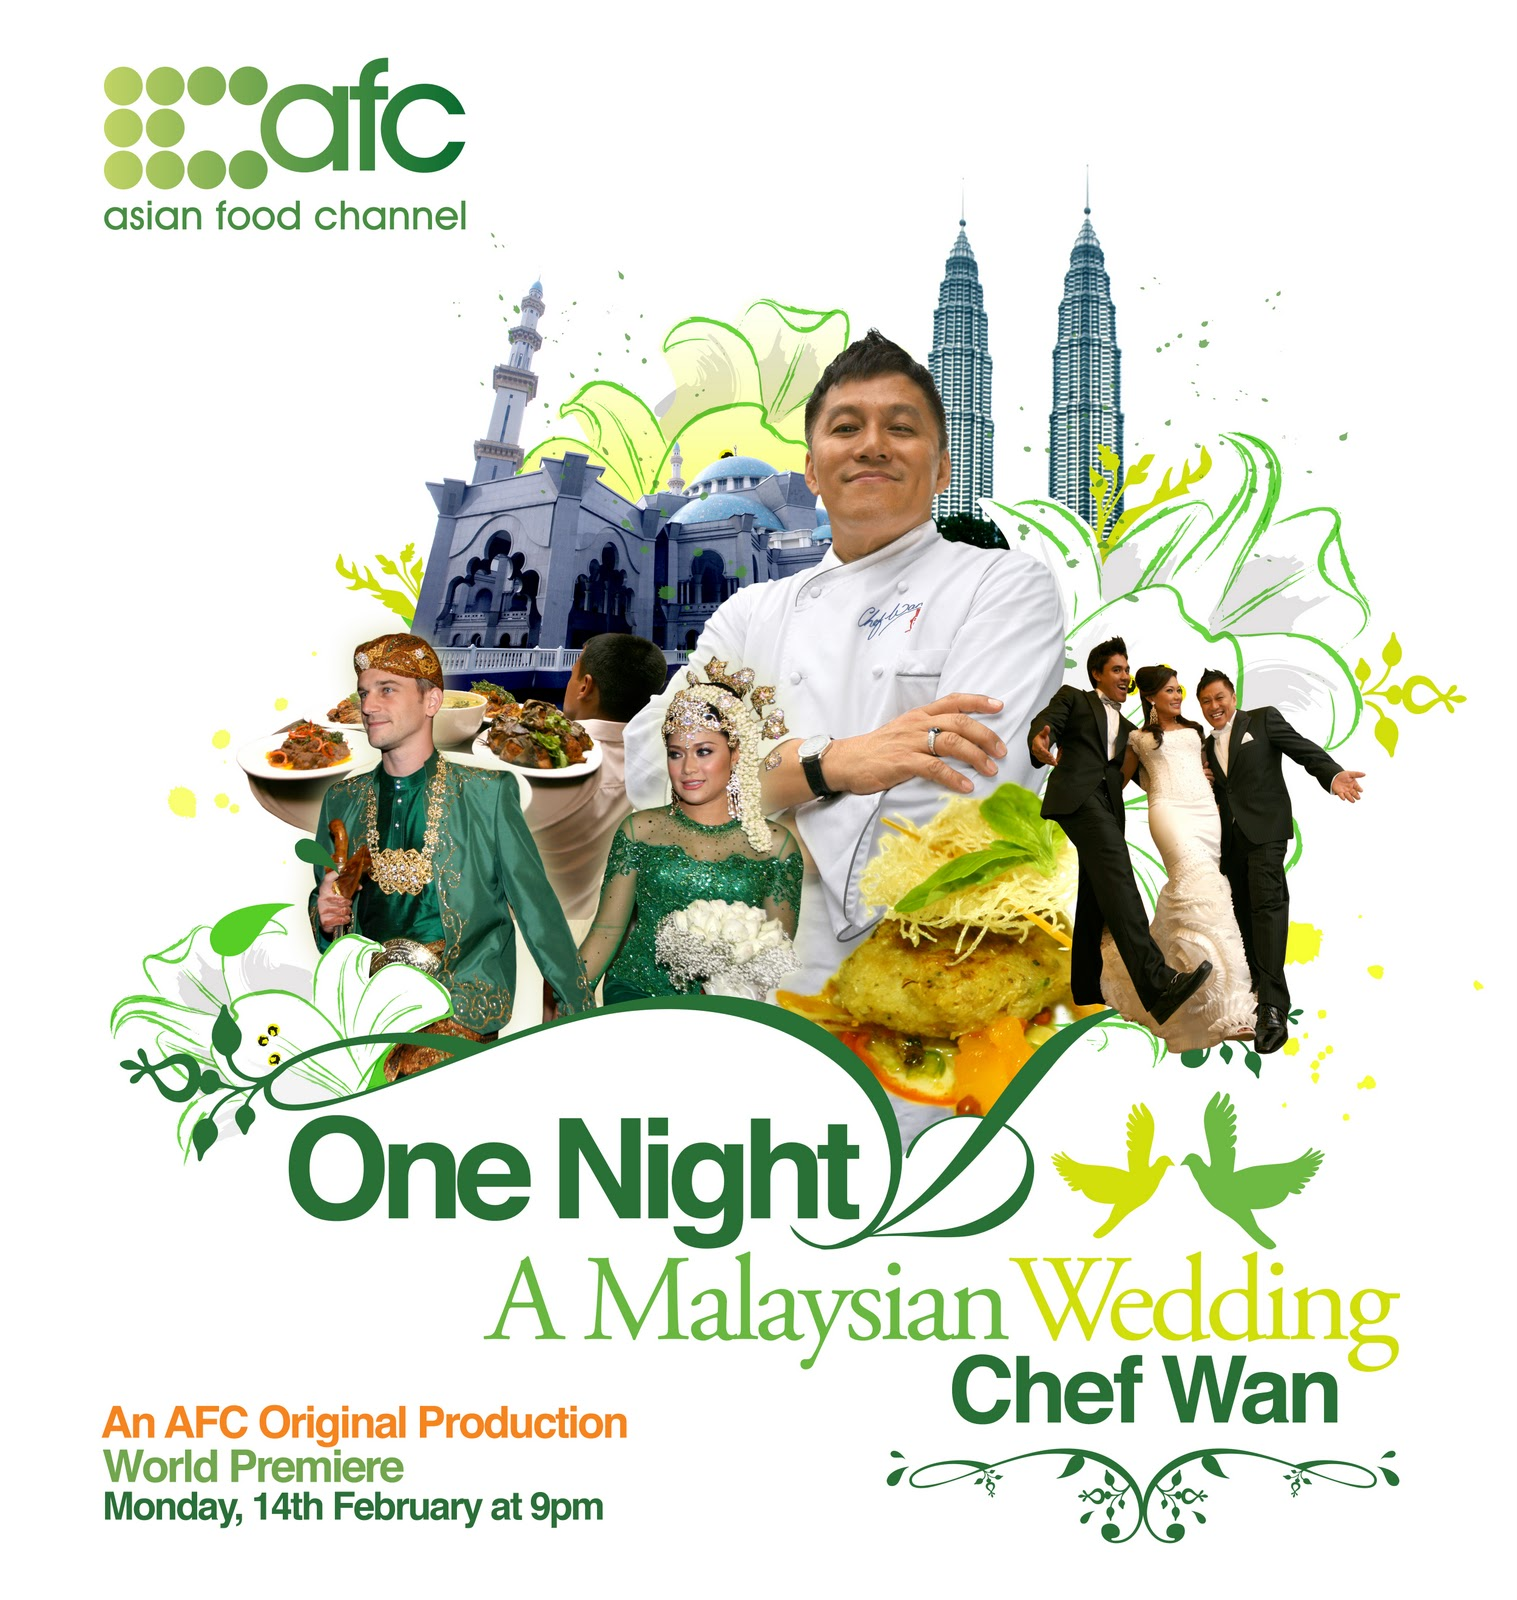 Chasing food dreams one night a malaysian wedding by chef wan check out asian food channel astro channel 703 tonight feb 14th at 9pm to view the stunning wedding of serina redzuawan and her then fianc forumfinder Images